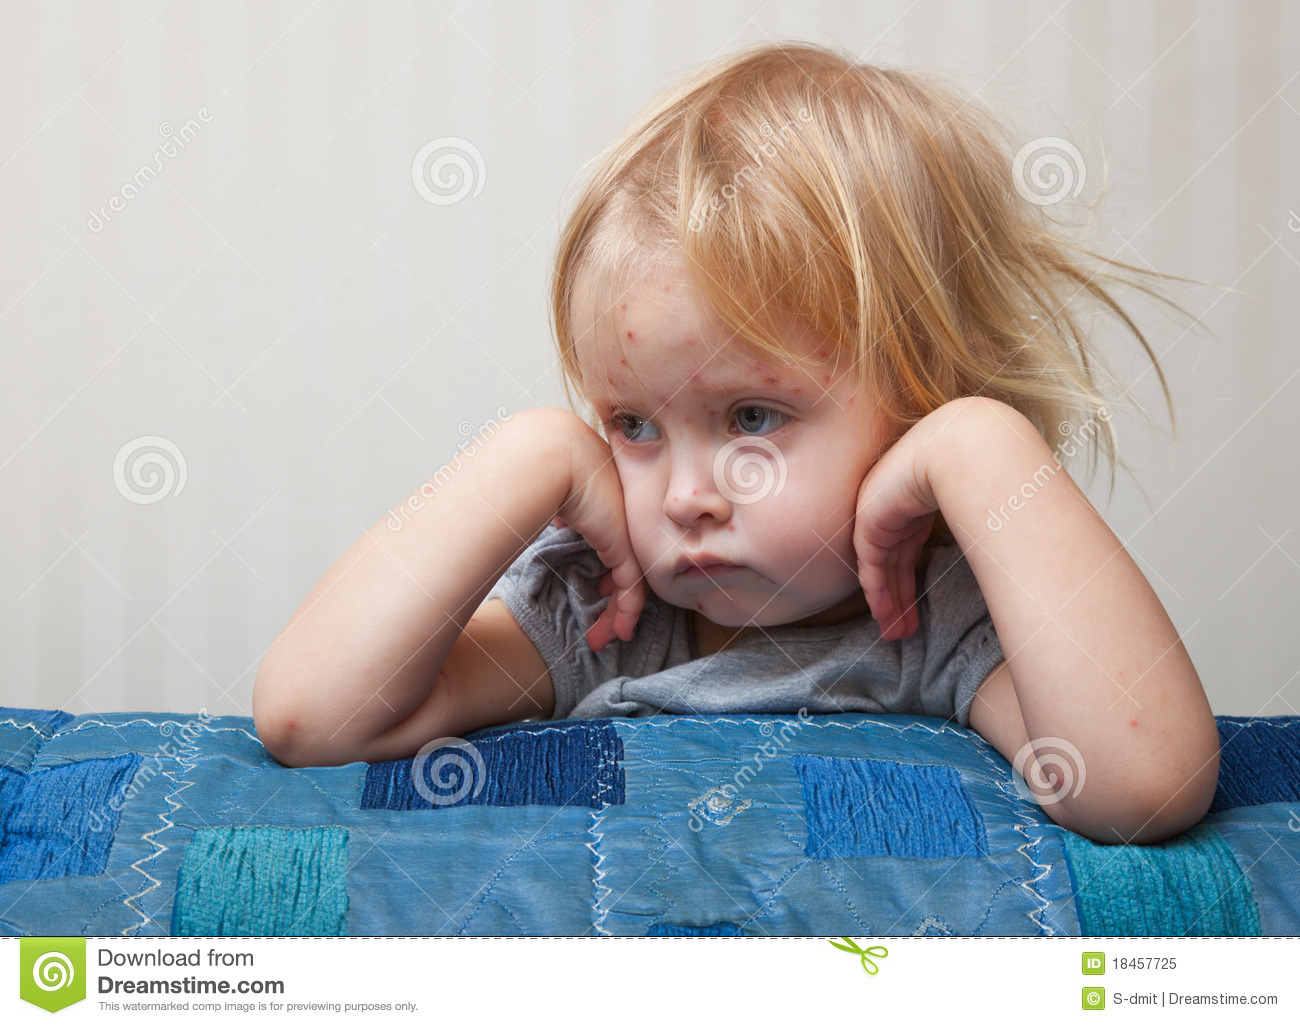 A sick girl is sitting near the bed